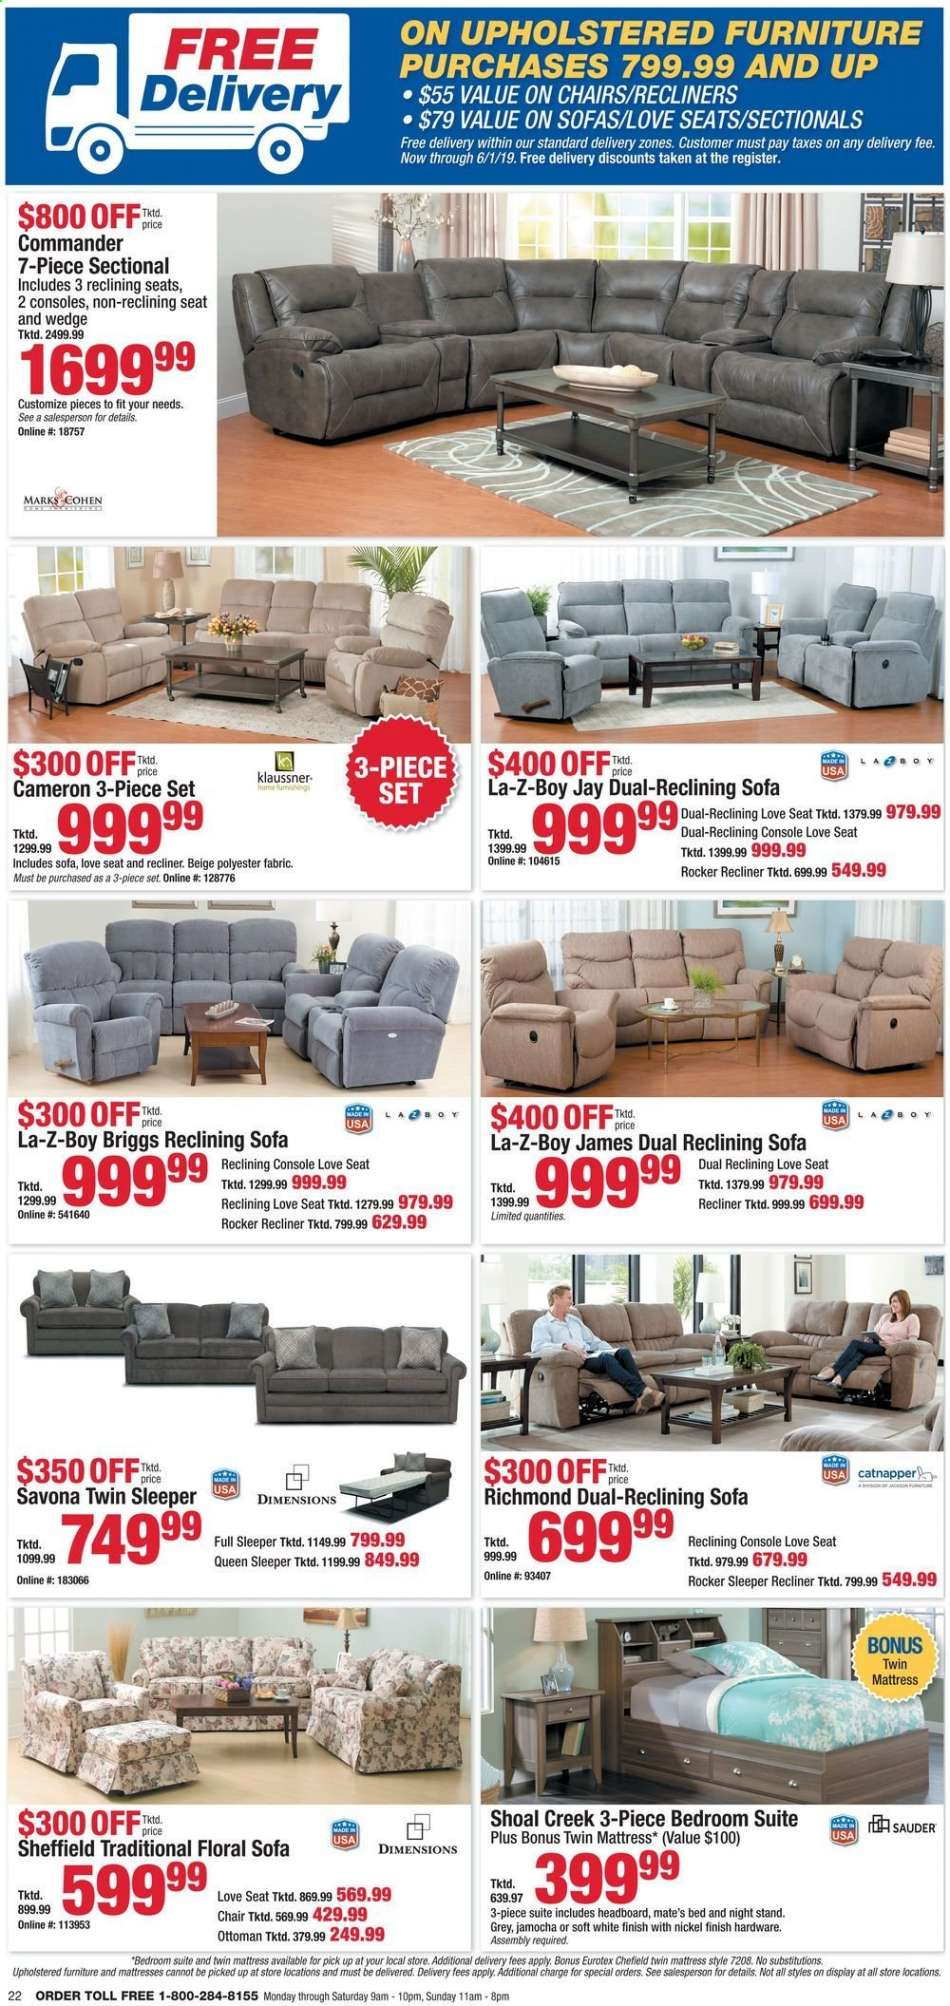 Enjoyable Boscovs Flyer 05 26 2019 06 02 2019 Weekly Ads Us Gmtry Best Dining Table And Chair Ideas Images Gmtryco